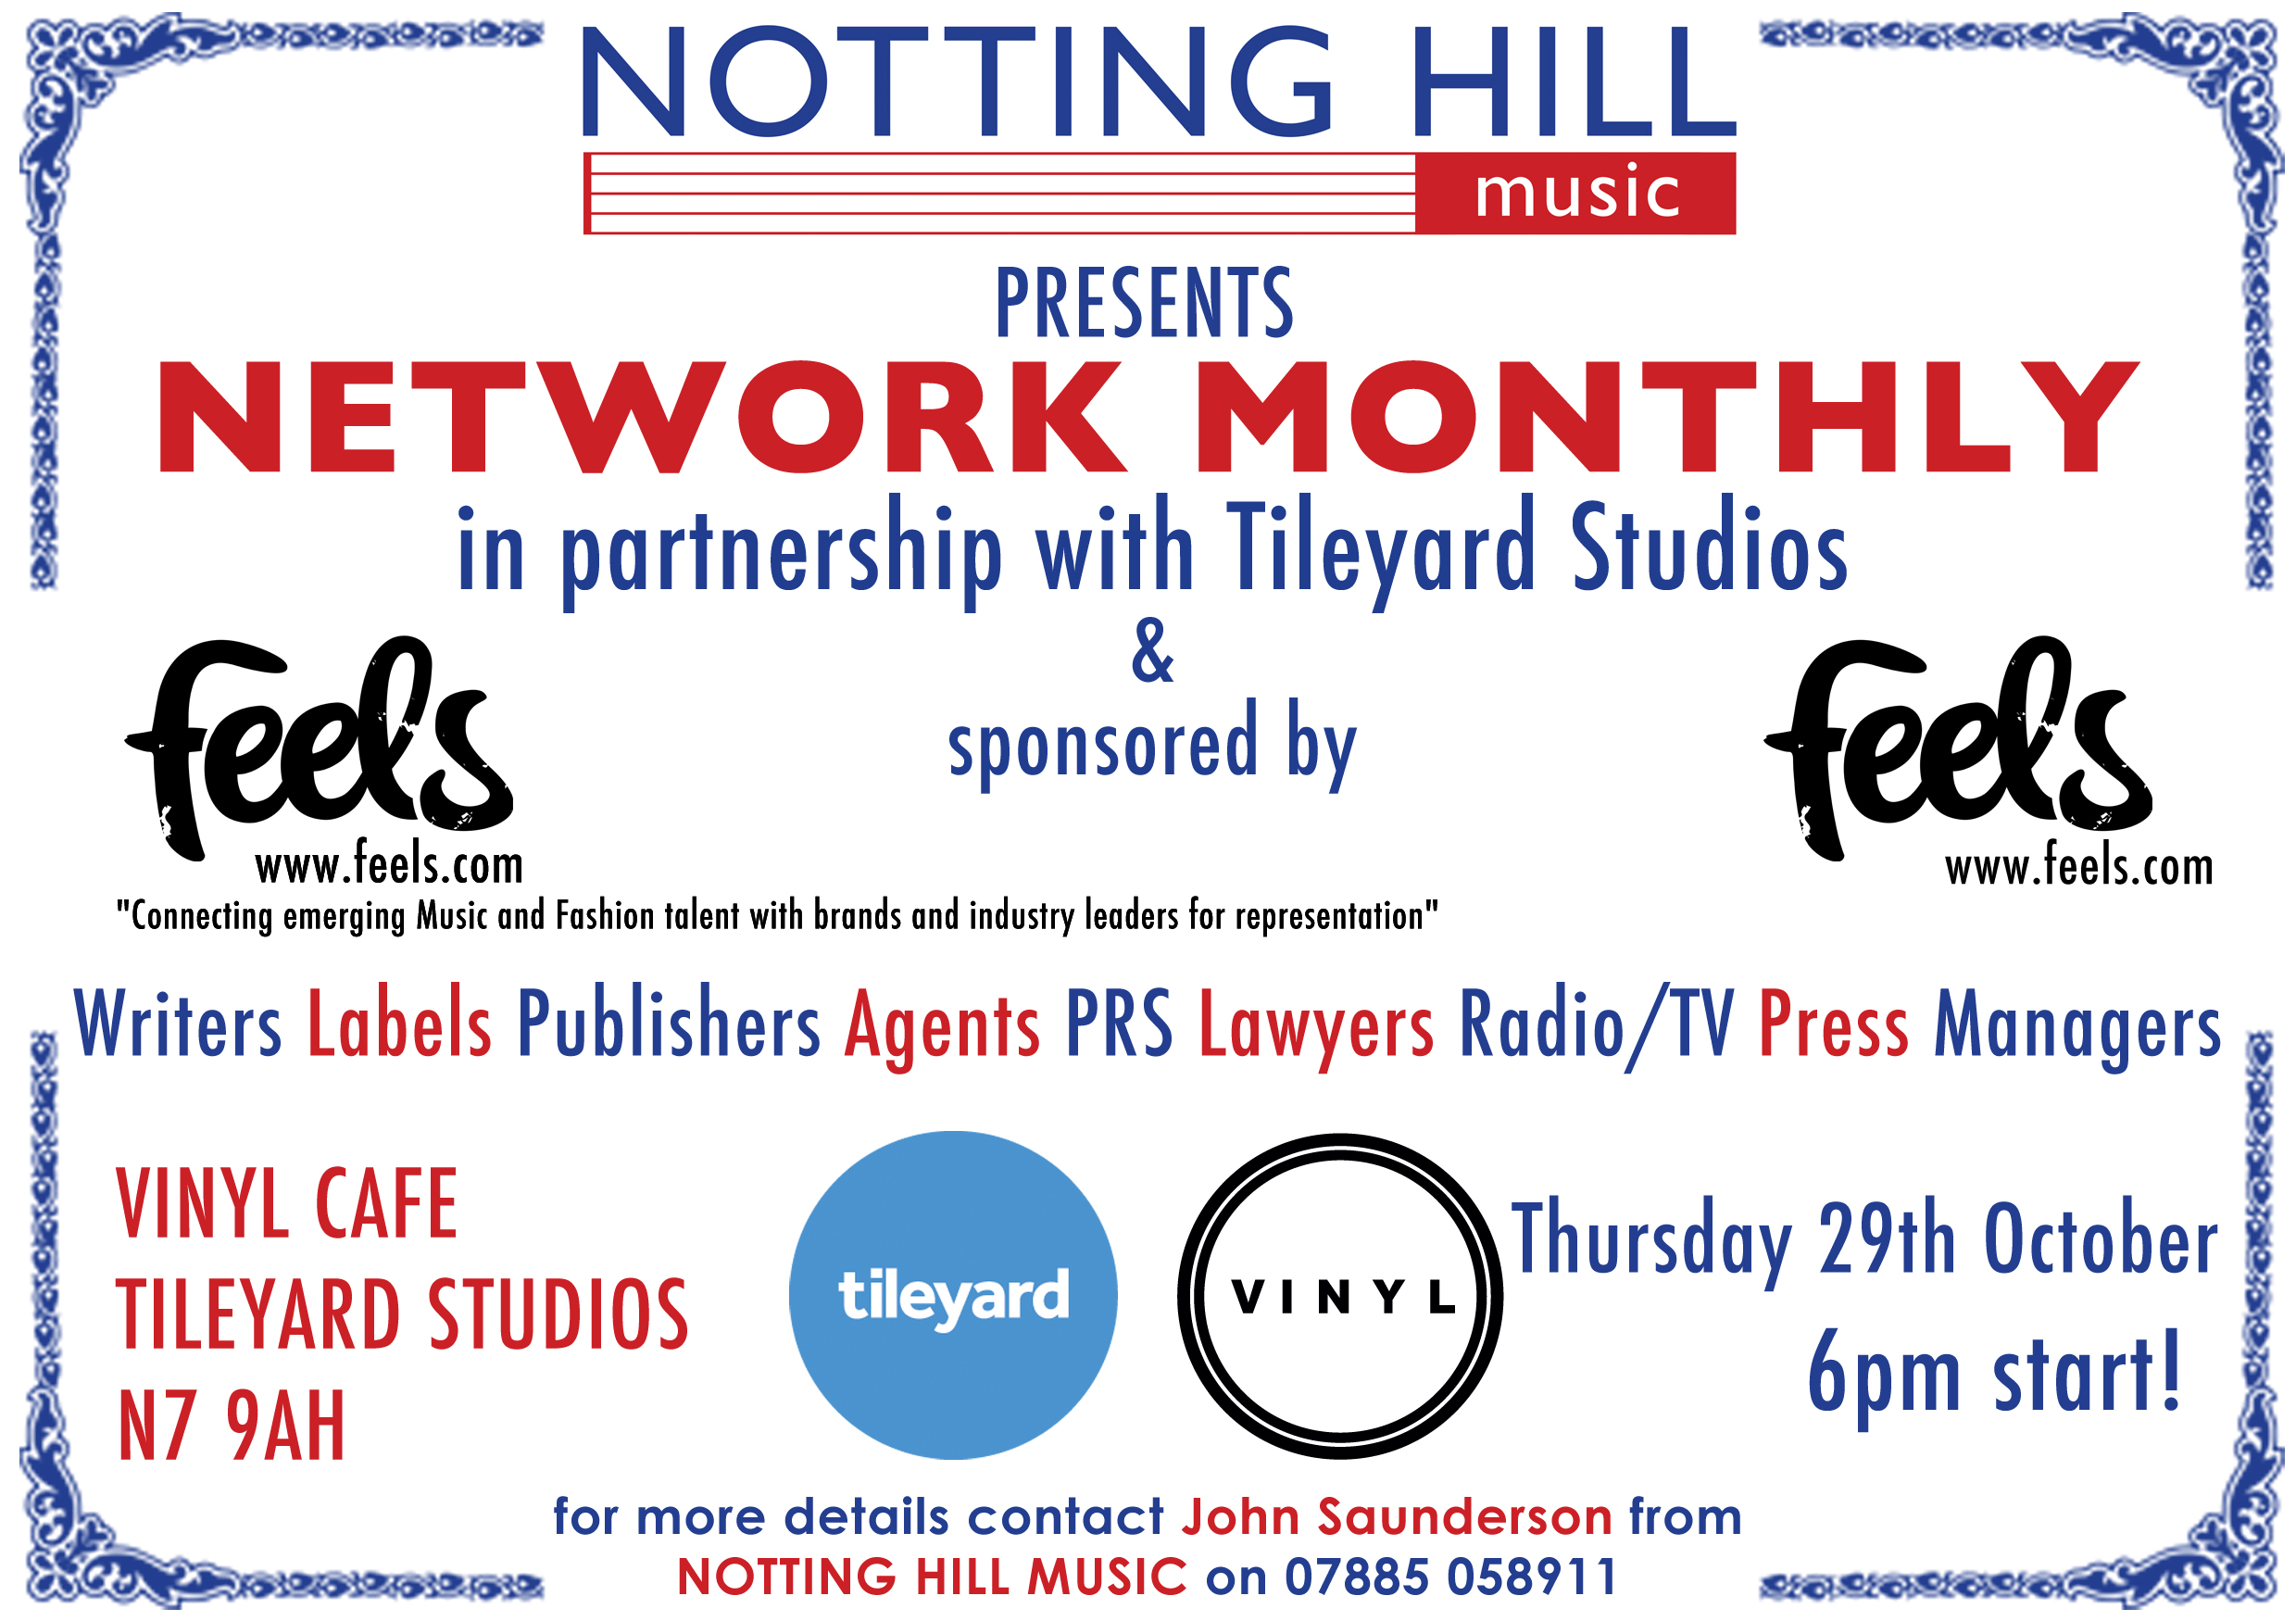 Notting Hill Music / Tileyard Studios Network Monthly